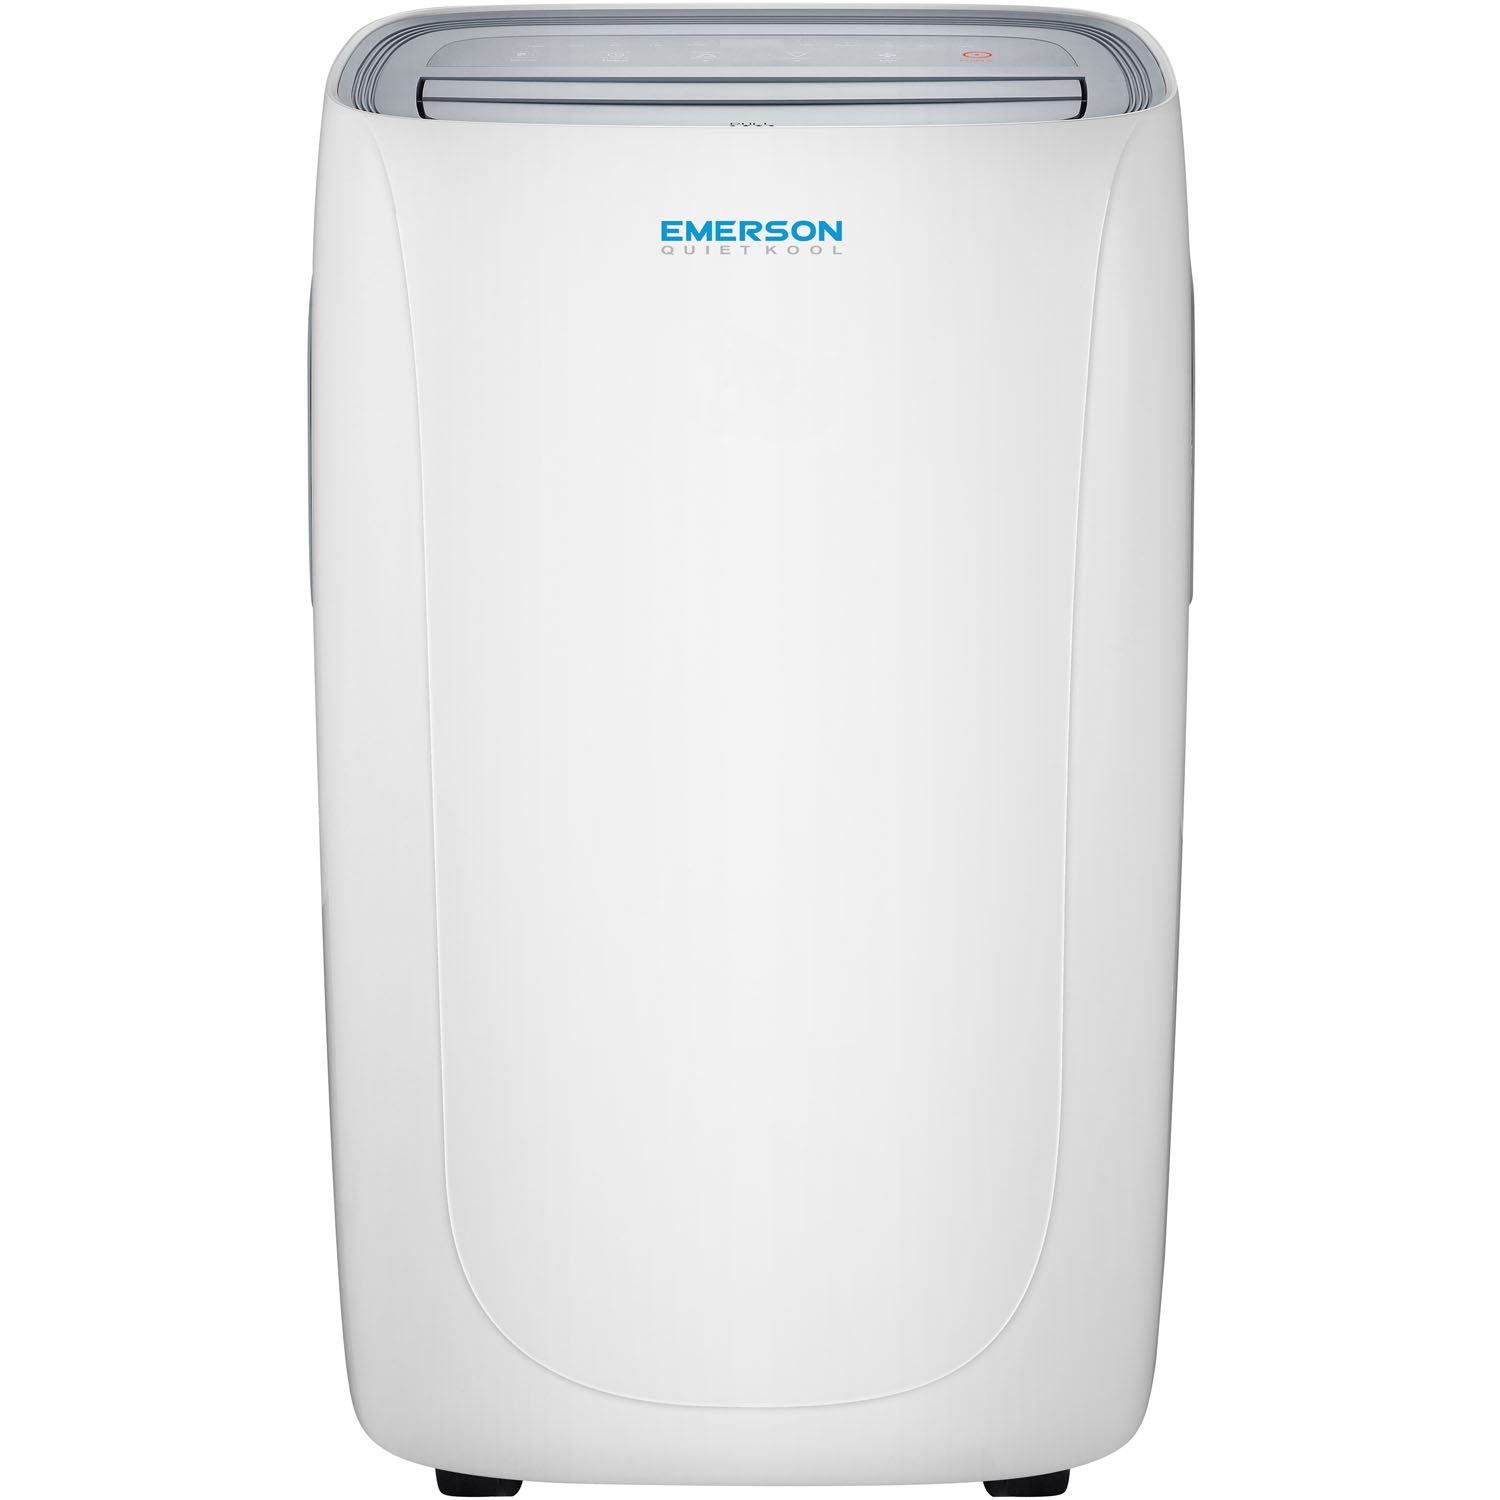 Emerson Quiet Kool EAPC12RD1 Portable Air Conditioner with Remote Control for Rooms up to 250-Sq. Ft.